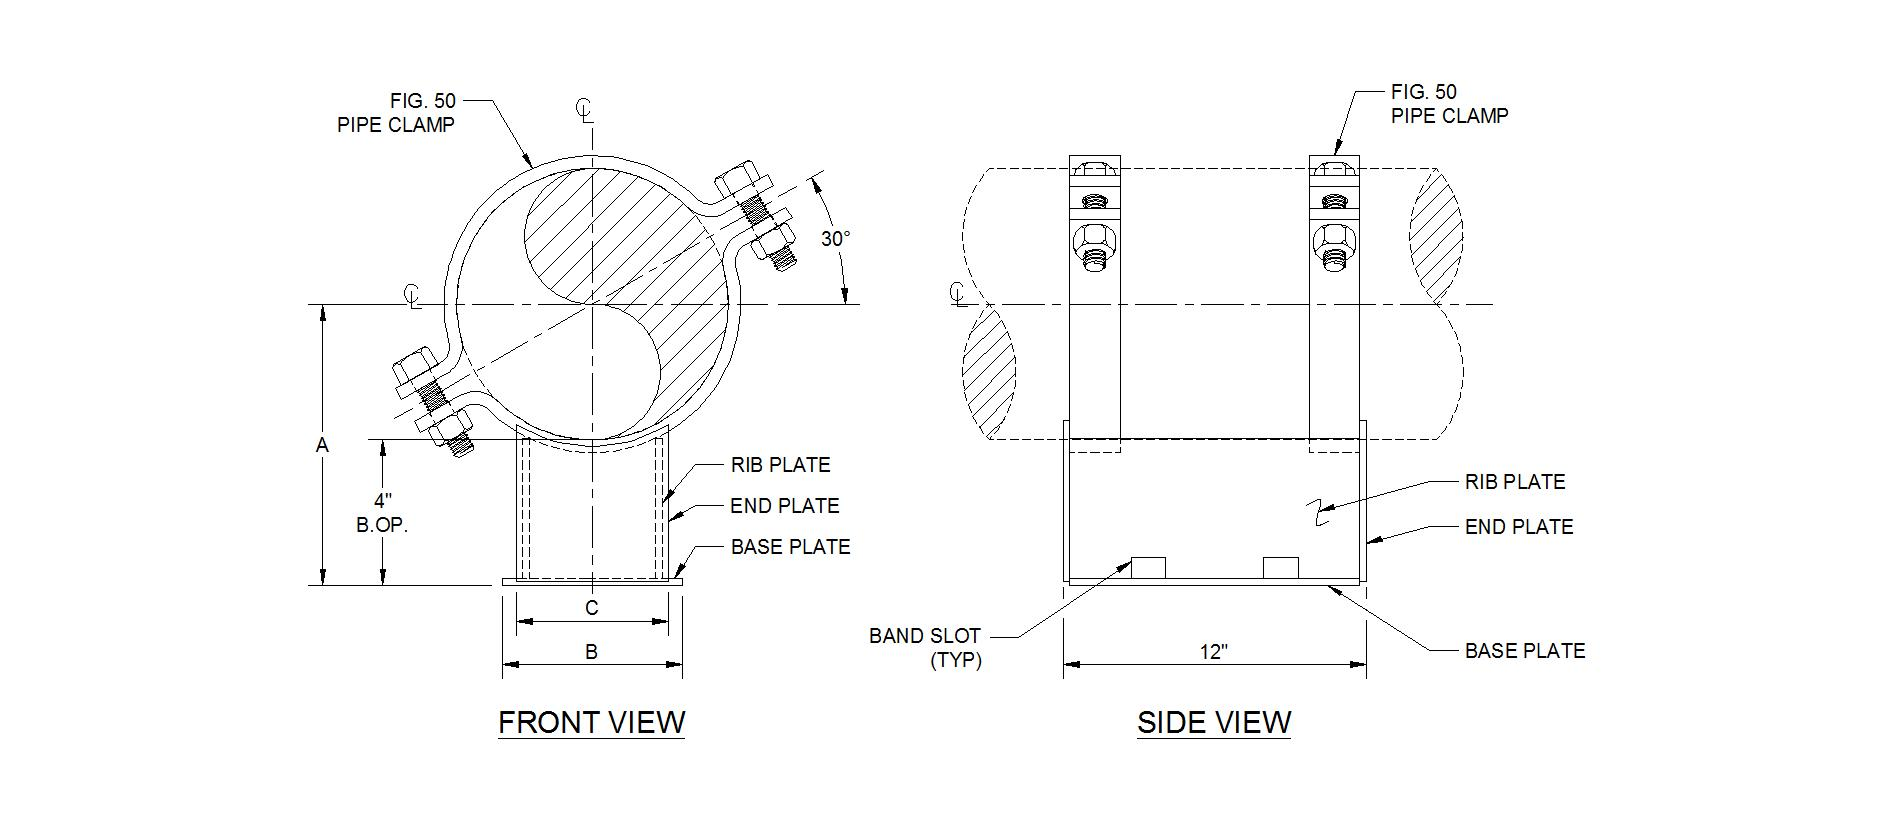 Supports With No Field Welding Piping Technology Products Inc Line Diagram 1400 Pipe Shoe Clamp